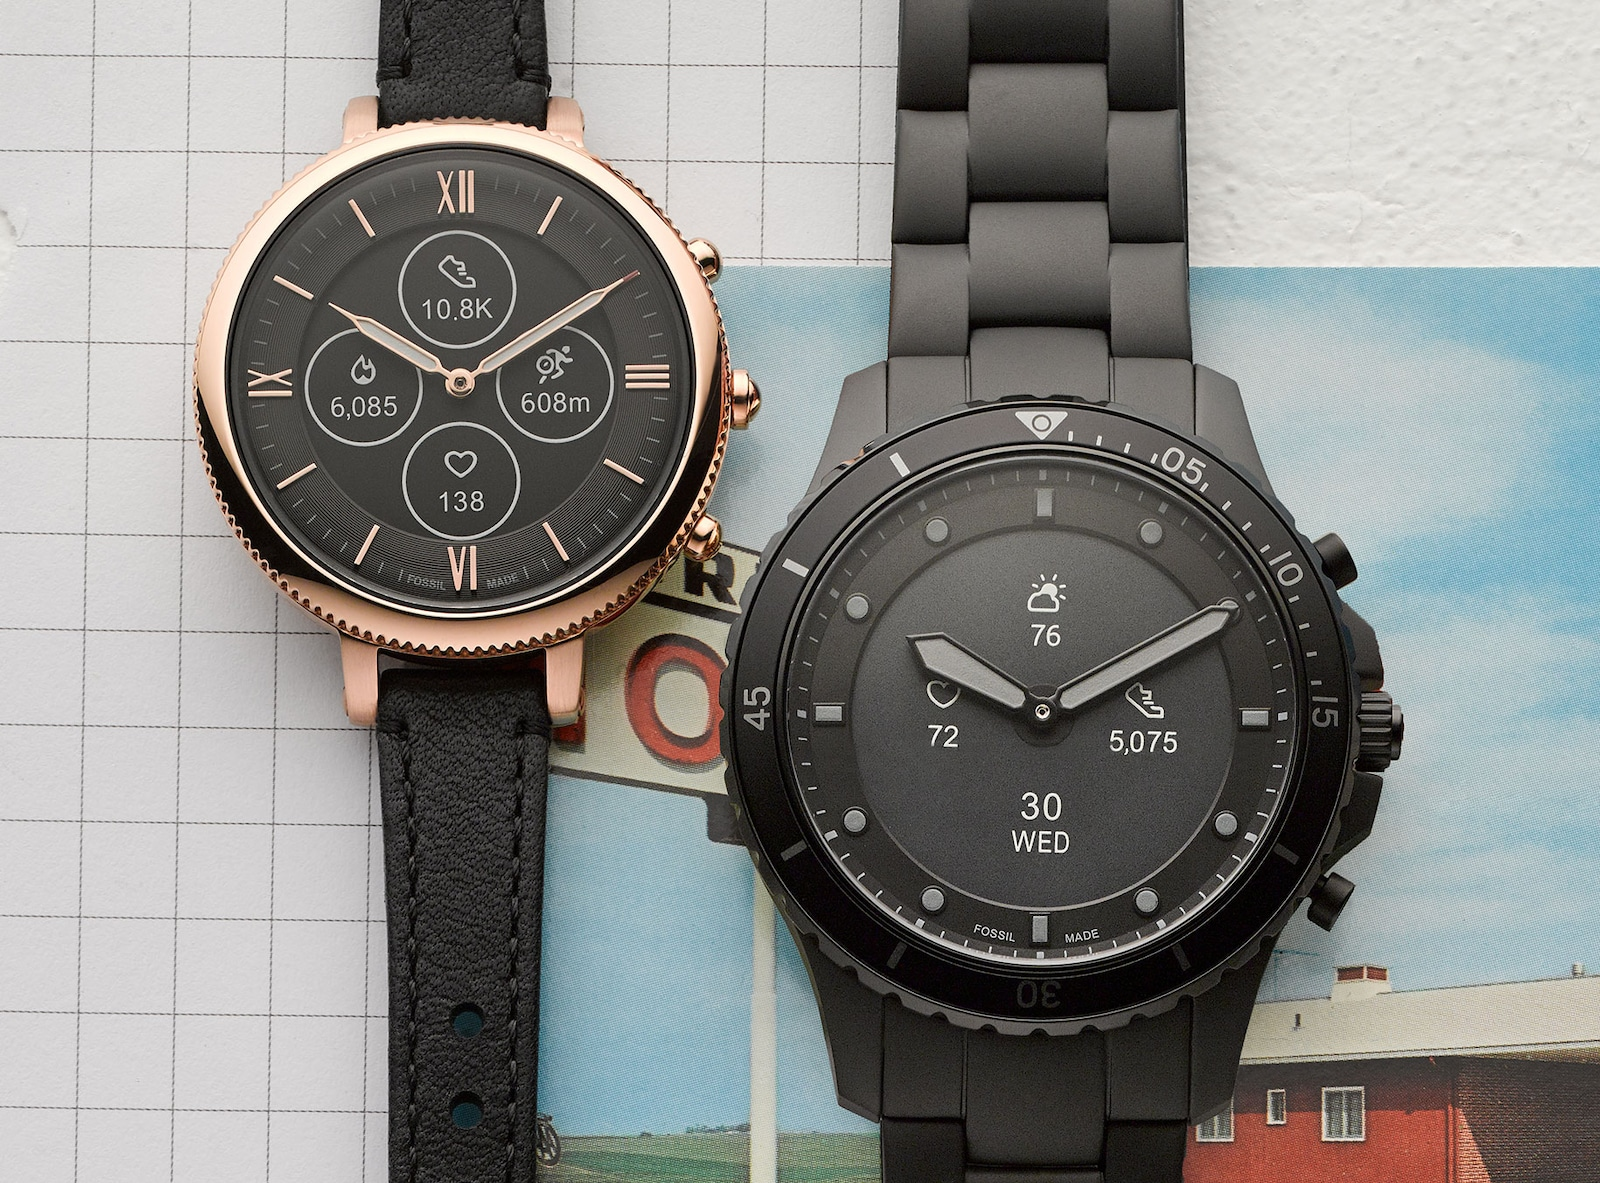 Two Hybrid HR Smartwatches on a textured background.